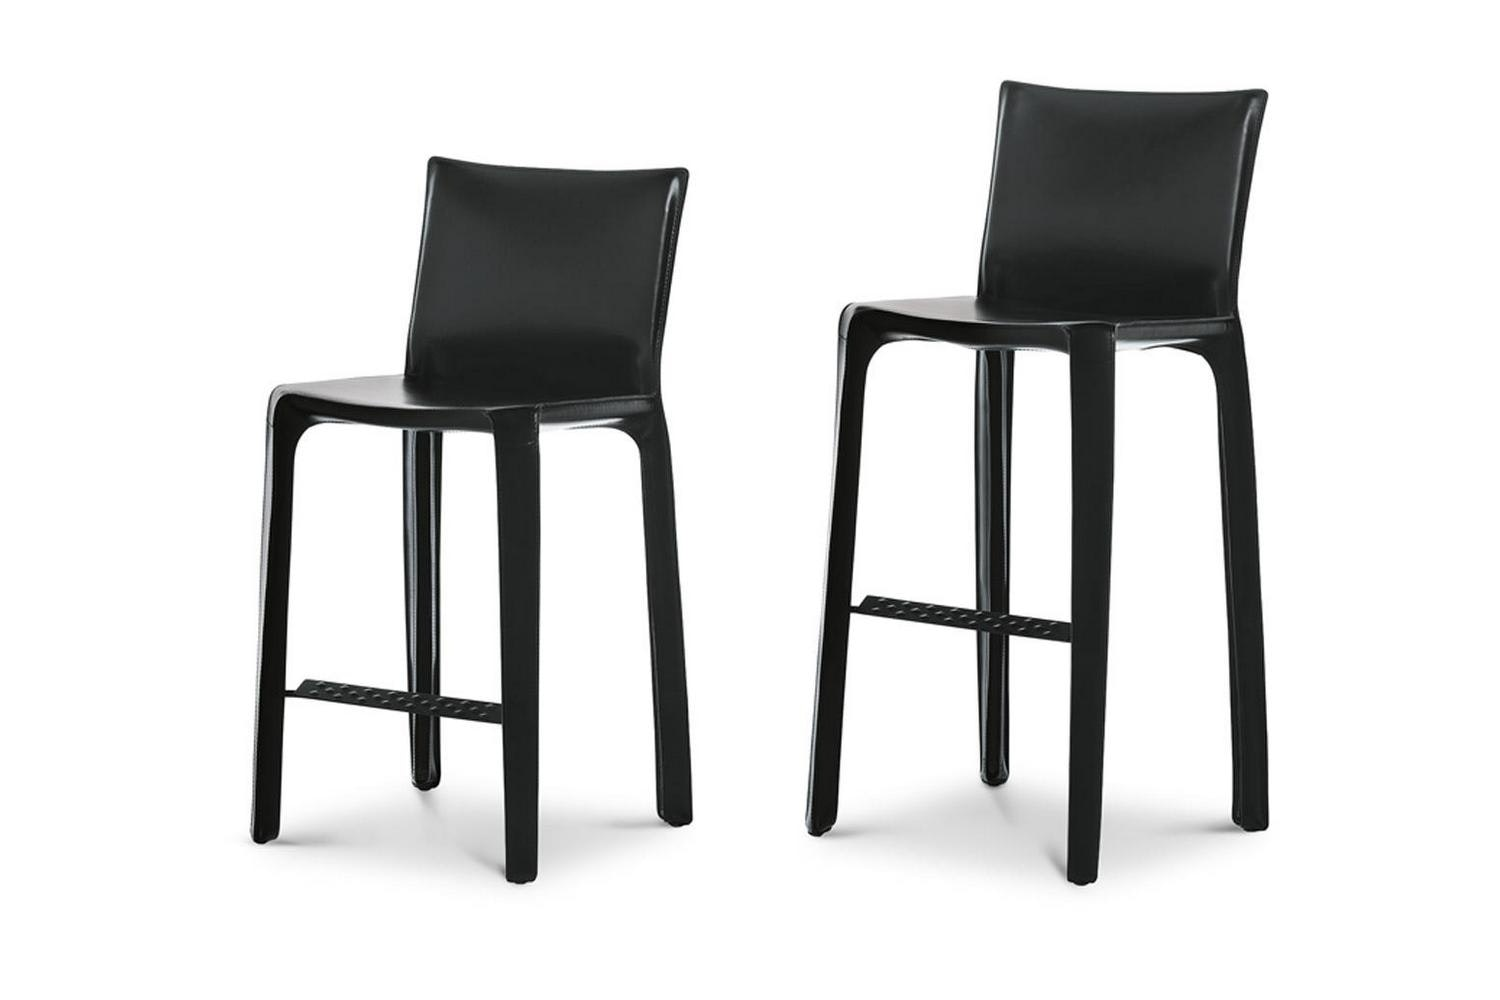 410 Cab Stool by Mario Bellini for Cassina